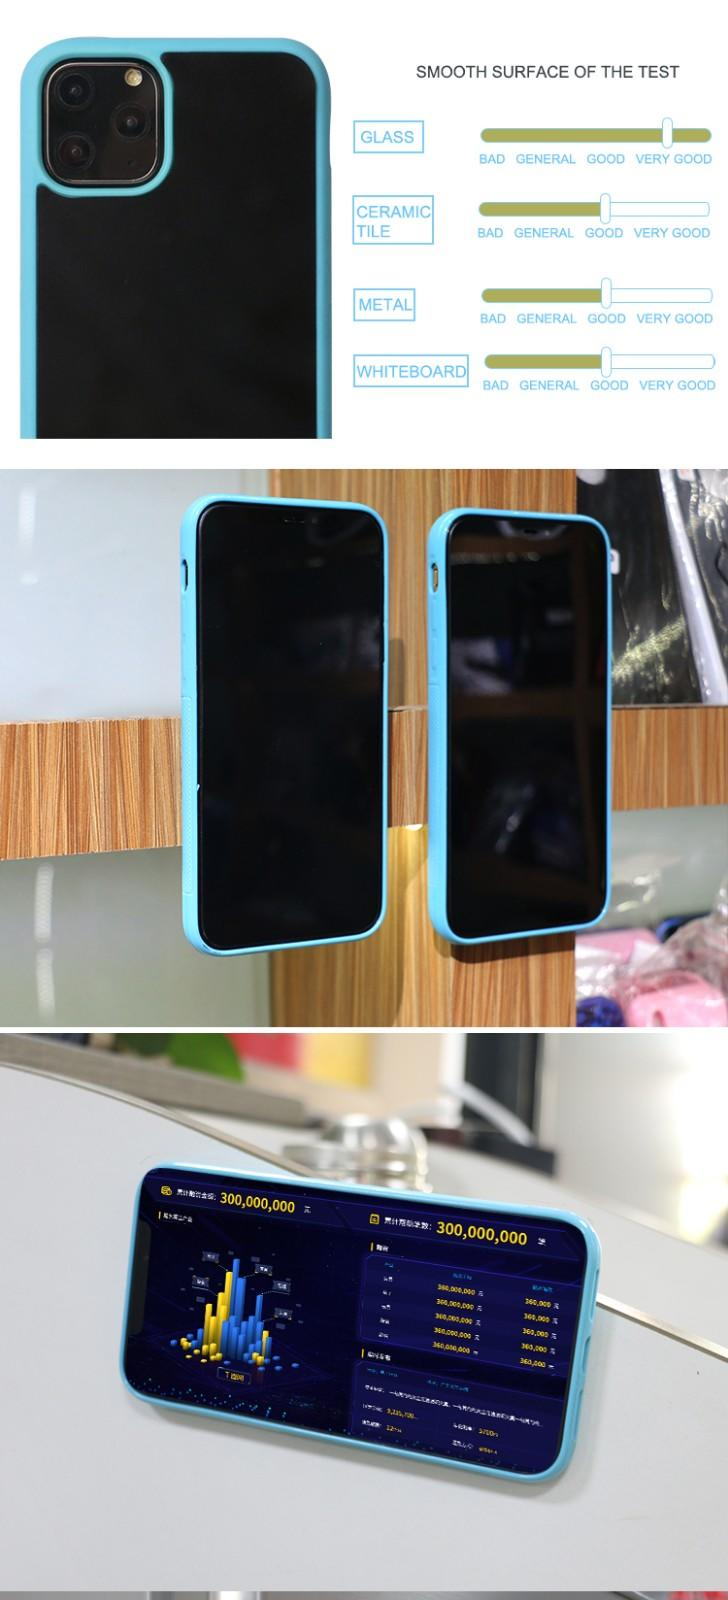 Vserstore soft designer cell phone cases factory price for for iphone